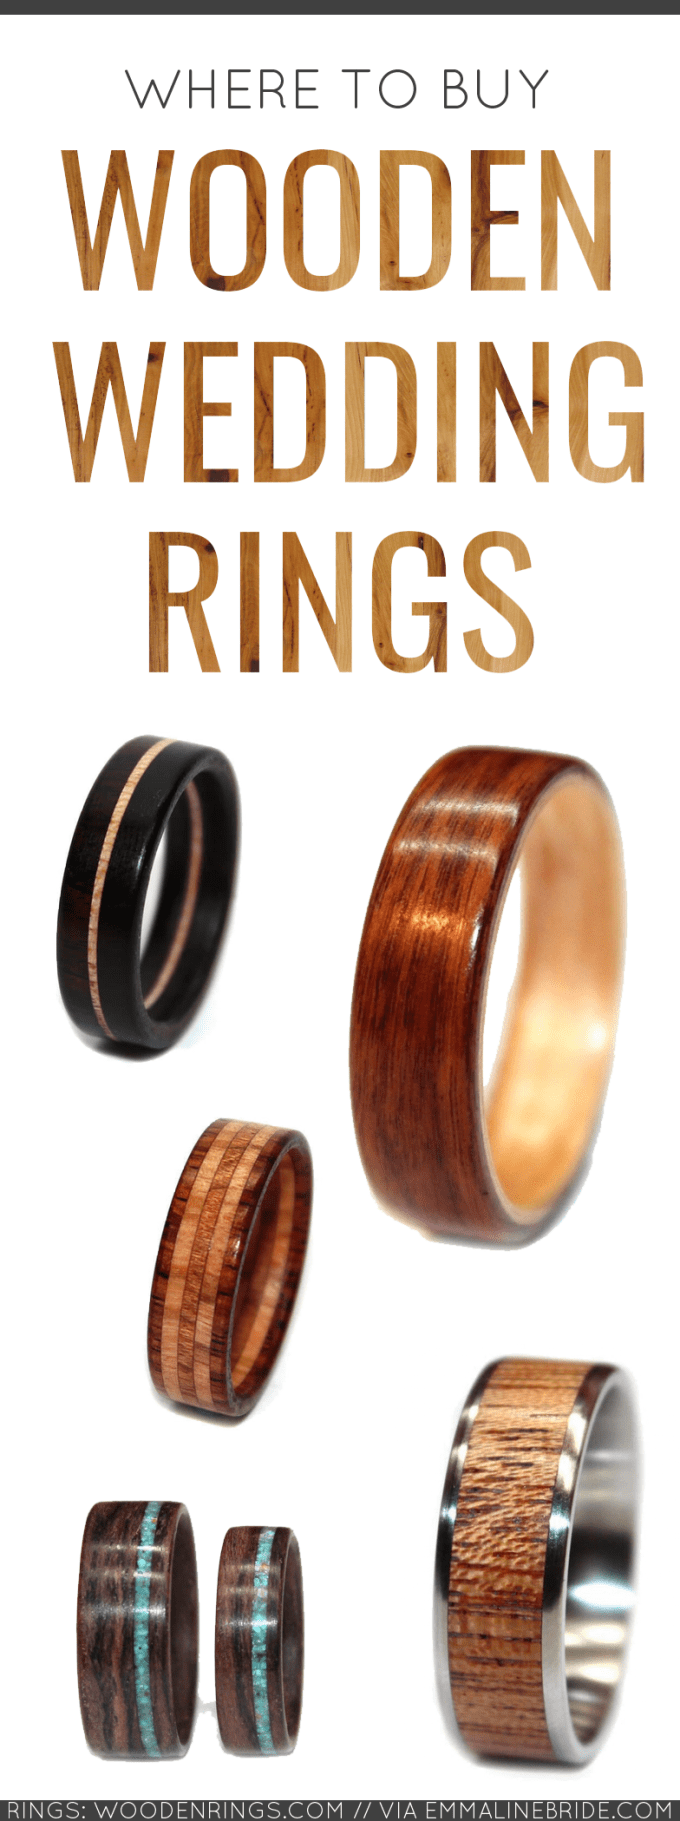 where to buy wooden wedding rings that last was last modified july 18th 2017 by emma arendoski